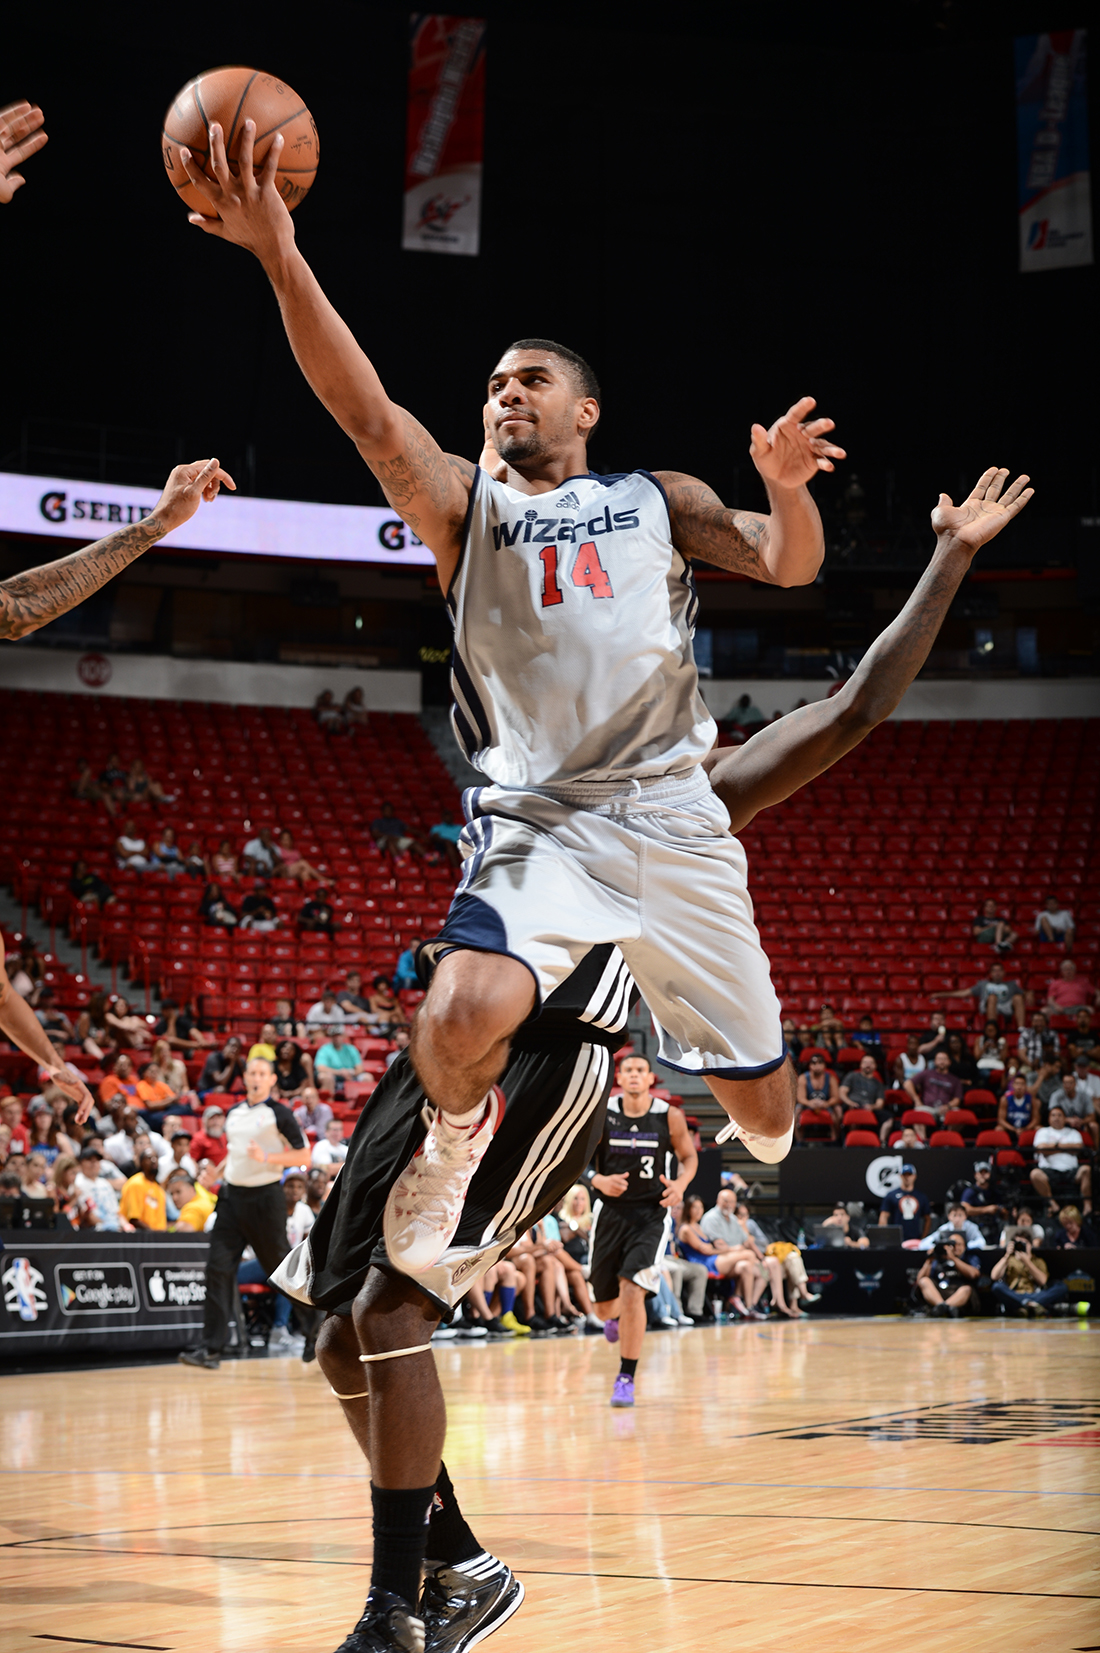 Glen Rice Jr nba summer league en viva basquet